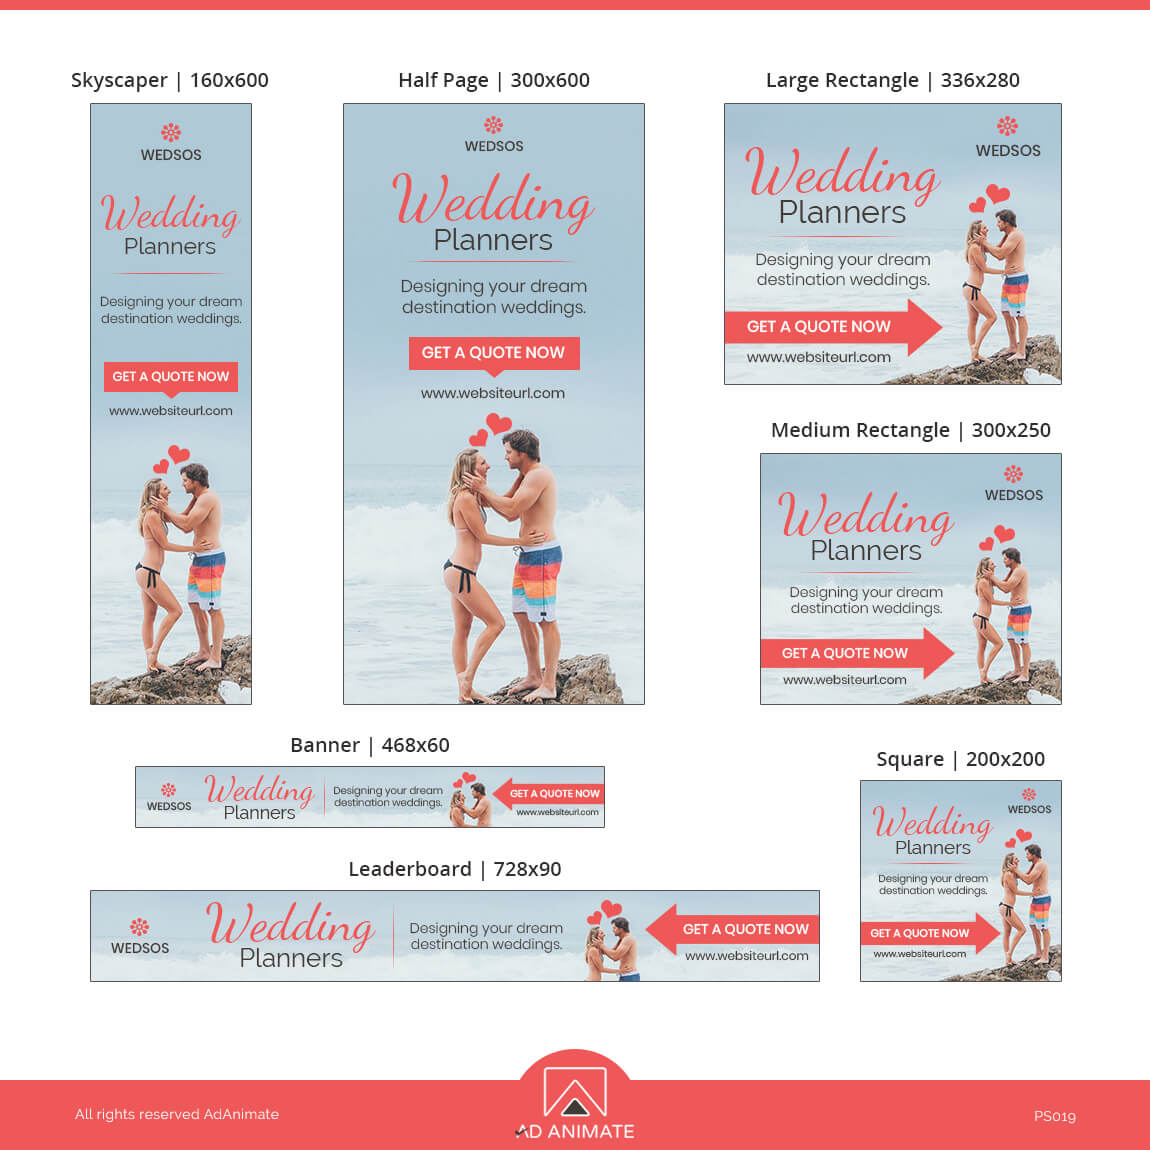 wedding-planner-ad-template